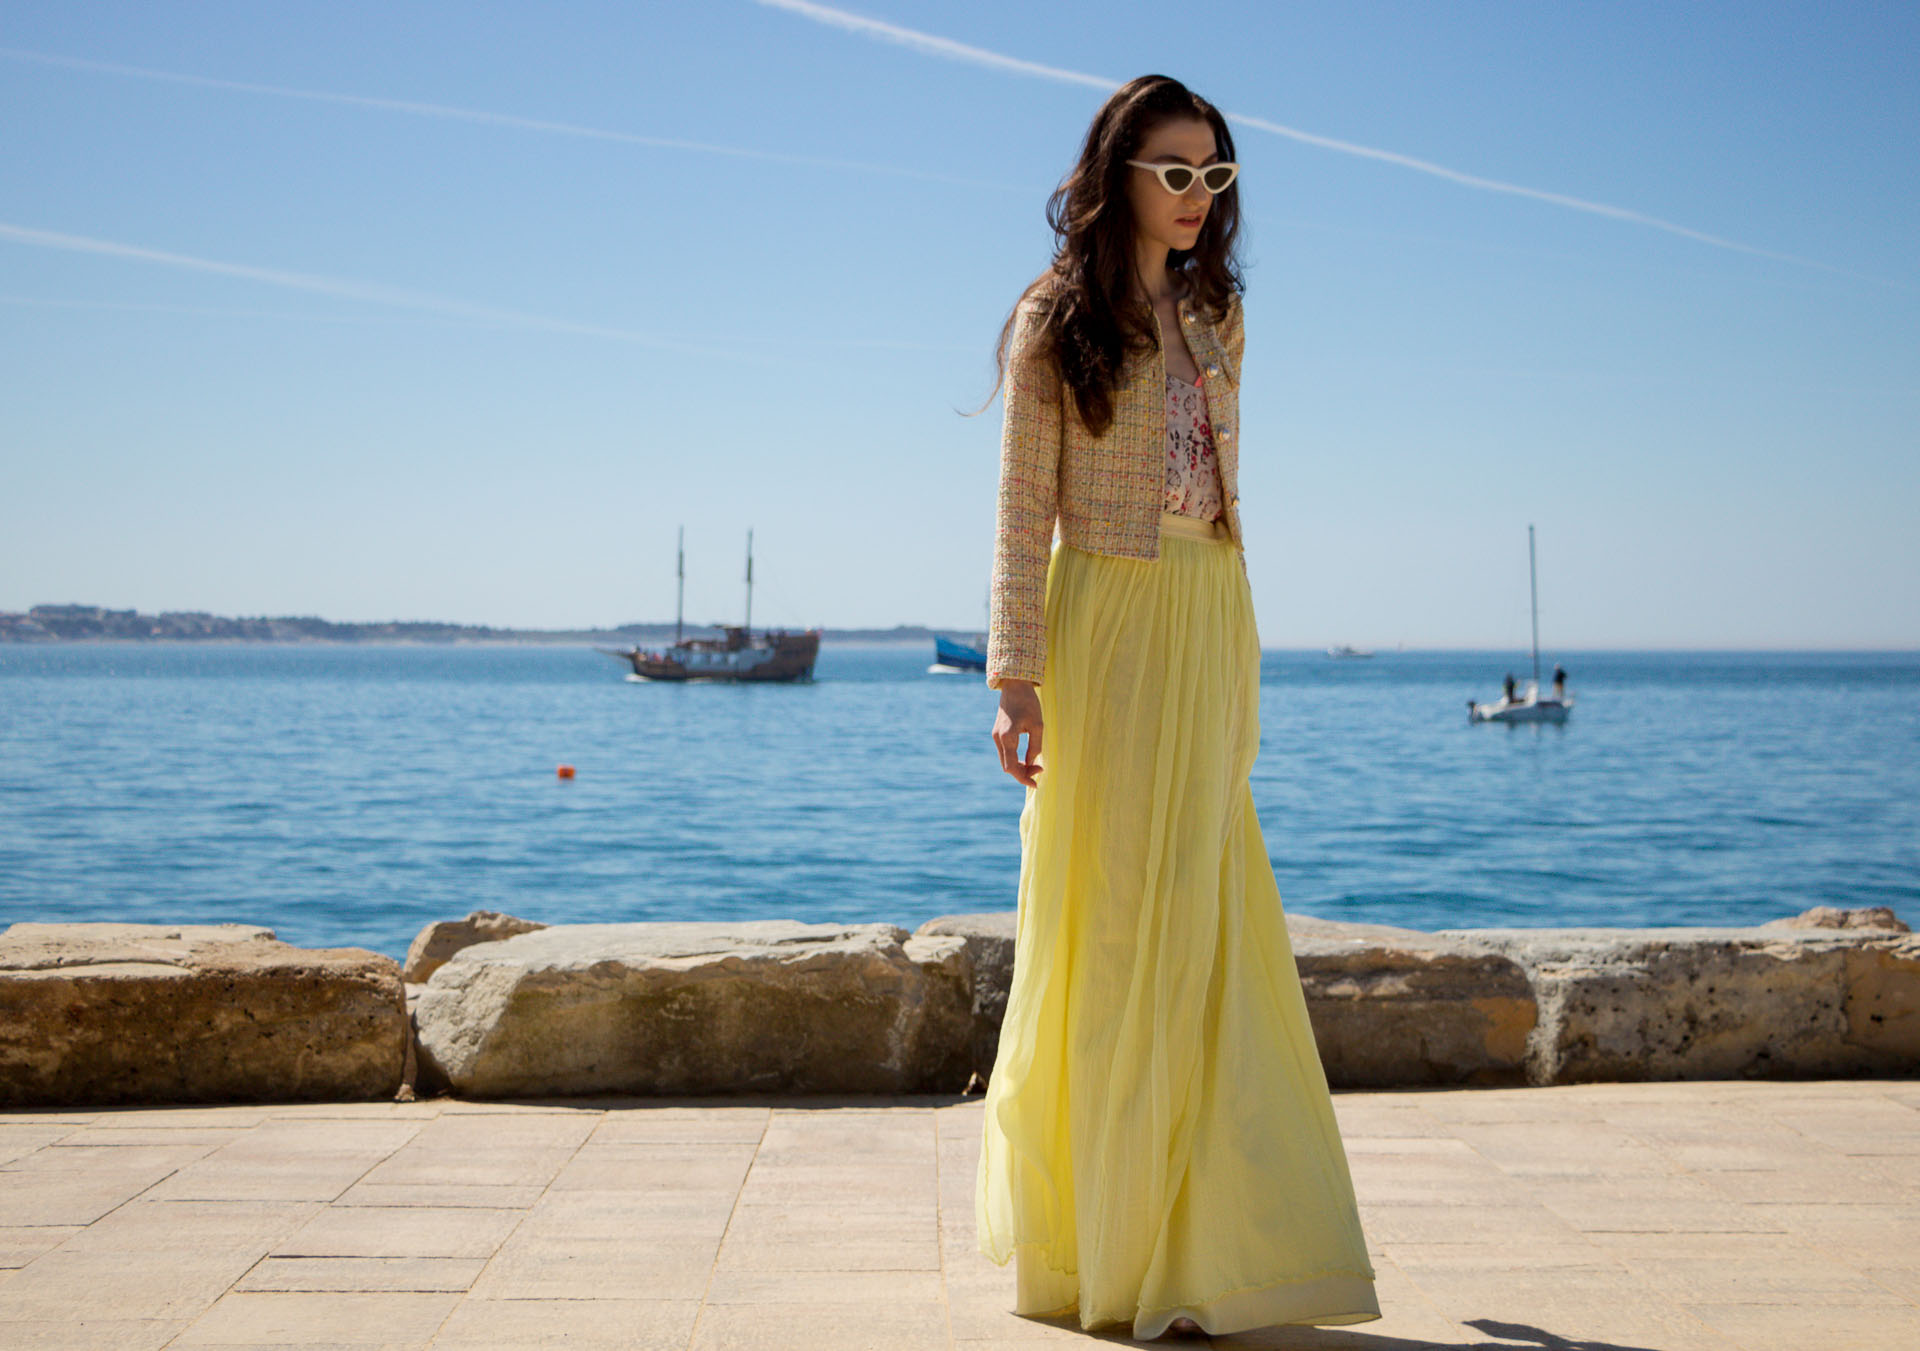 Veronika Lipar Fashion Blogger of Brunette from Wall Street wearing maxi yellow tulle skirt from Needle & Thread, short yellow tweed jacket from Storets, floral silk top, blush Gianvito Rossi plexi pumps, white shoulder bag, Le specs white cat eye sunglasses by the sea